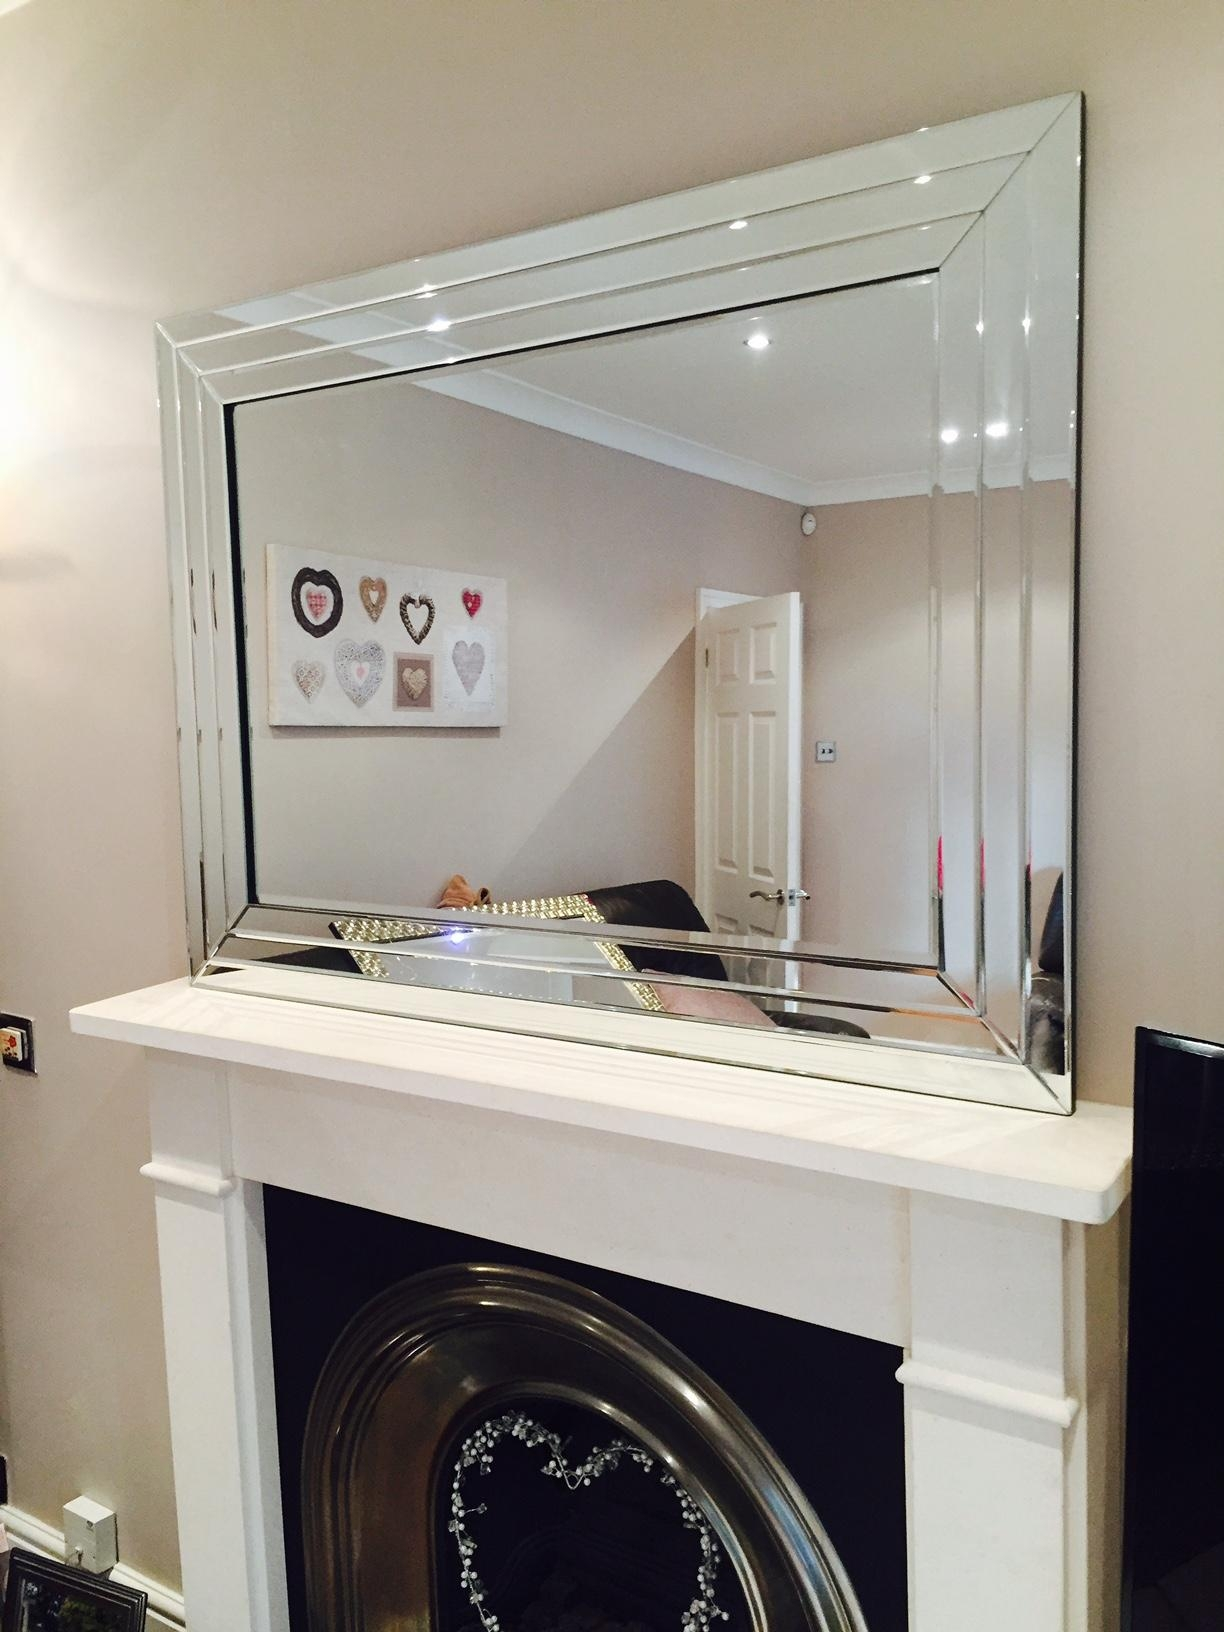 Prs Group Uk | Product Categories | Mirrors Inside Large Bevelled Mirror (Image 17 of 20)